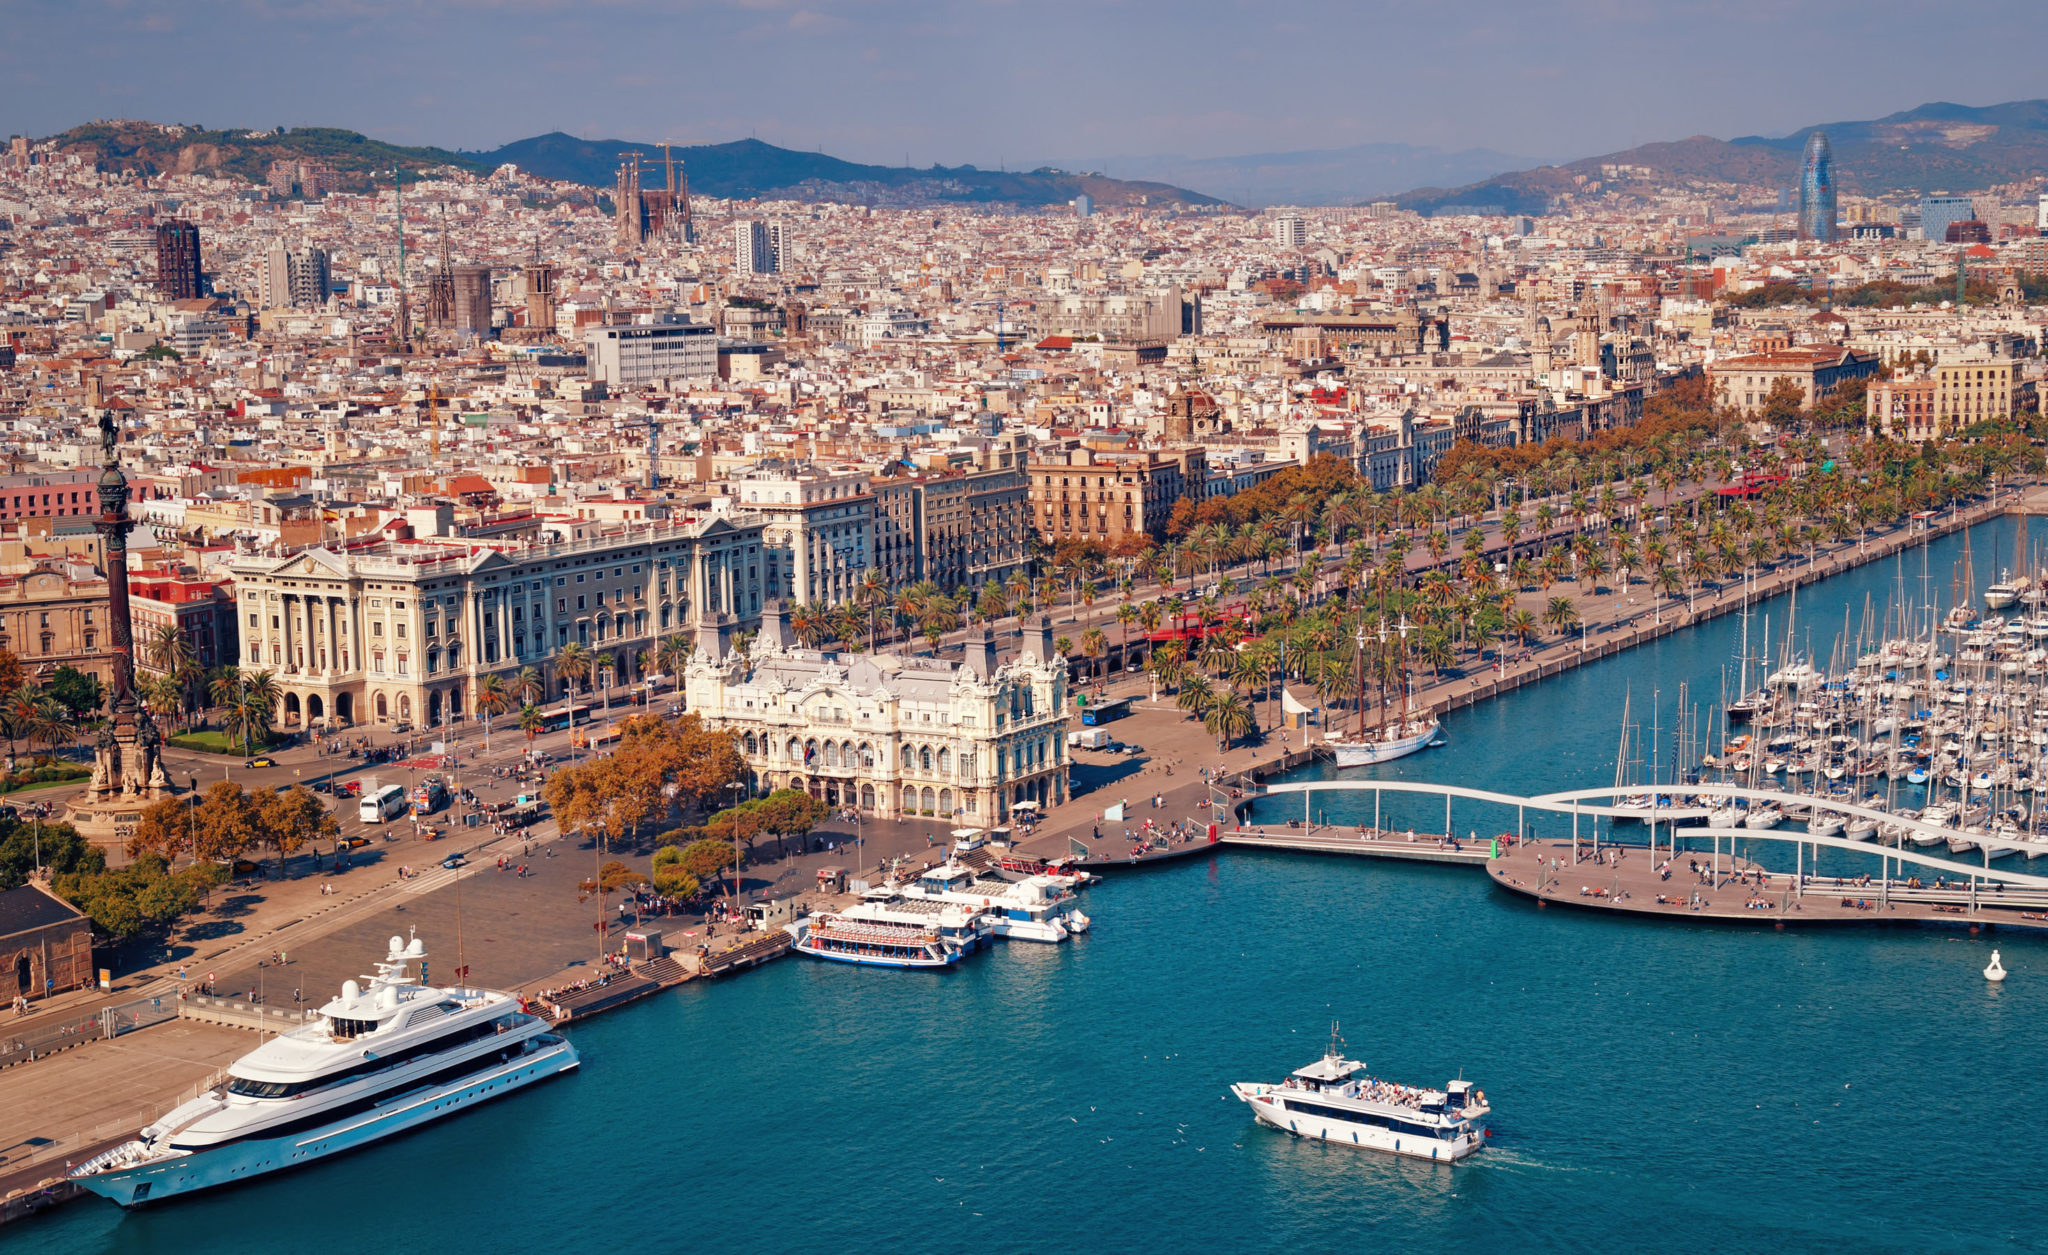 Travel guide to Barcelona - Montasir Ahmed's Blog